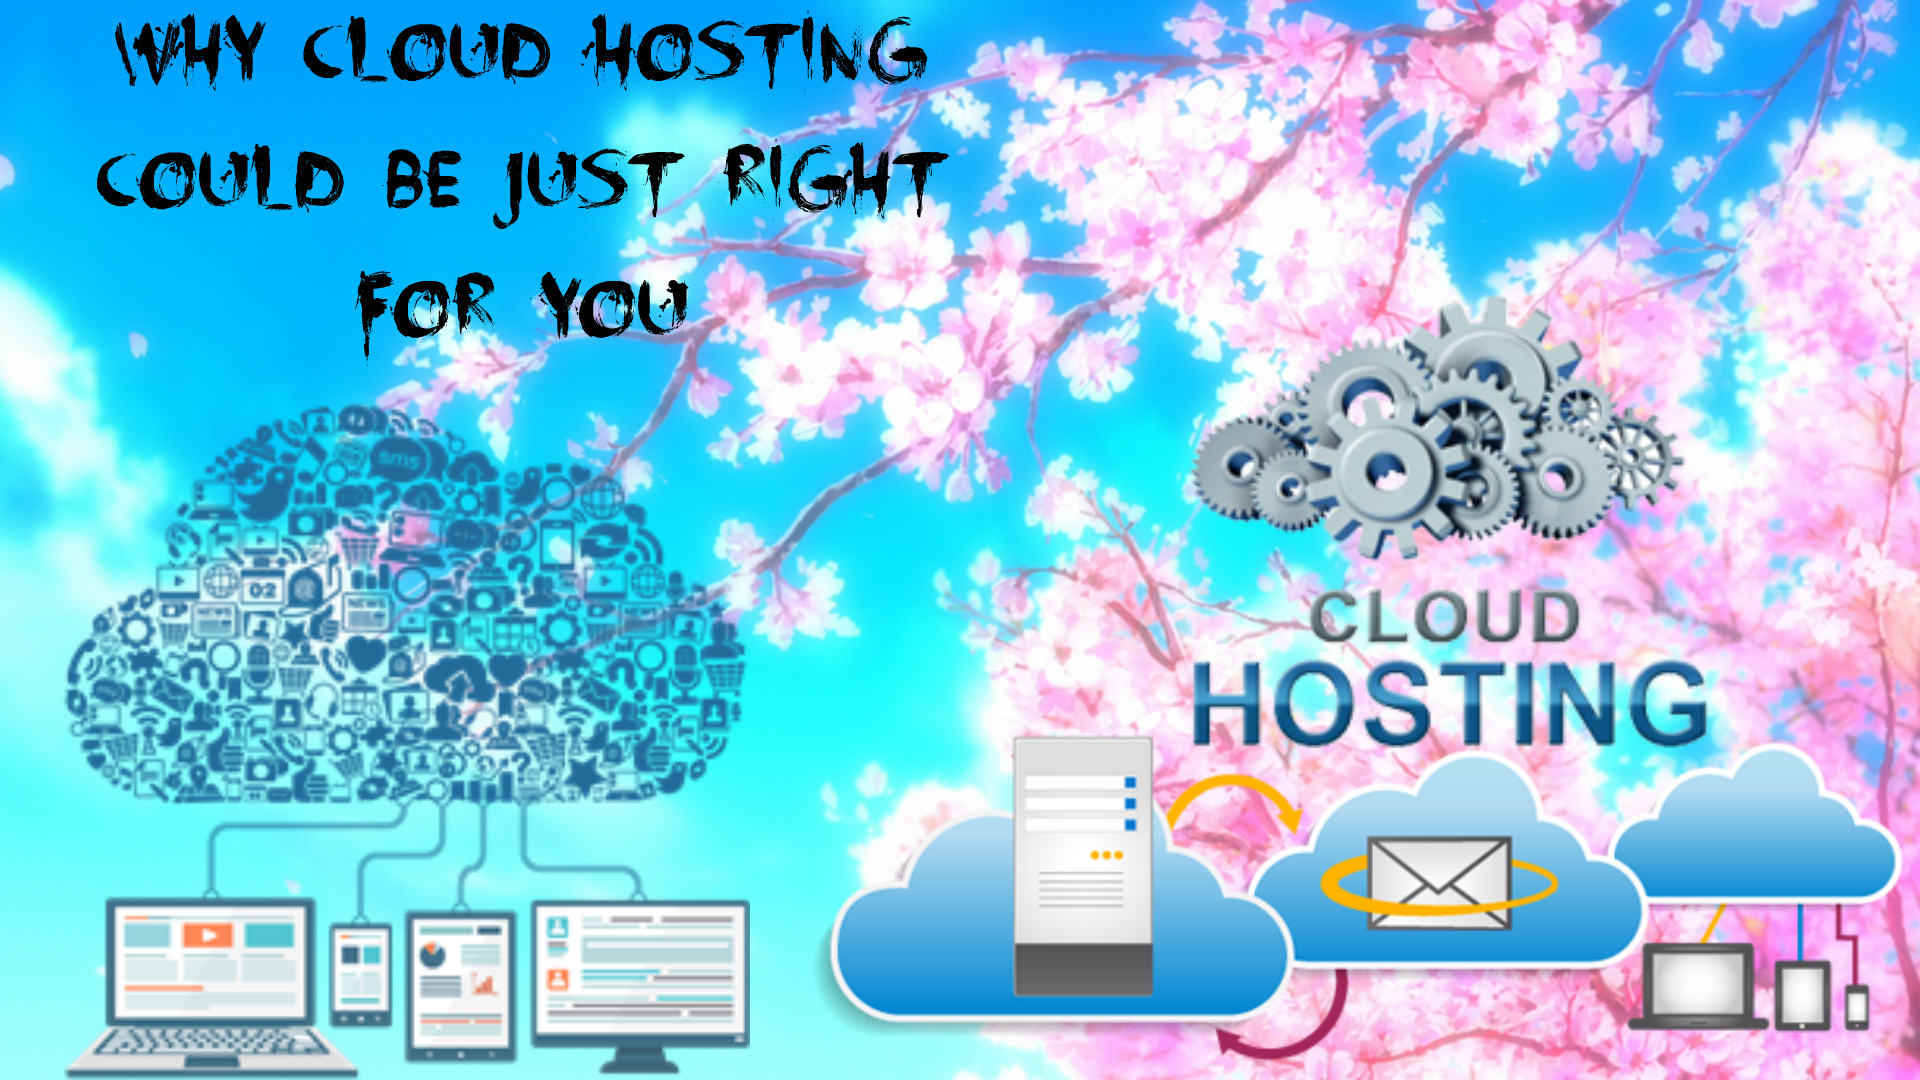 Why Cloud Hosting Could Be Just Right For You - Image 1